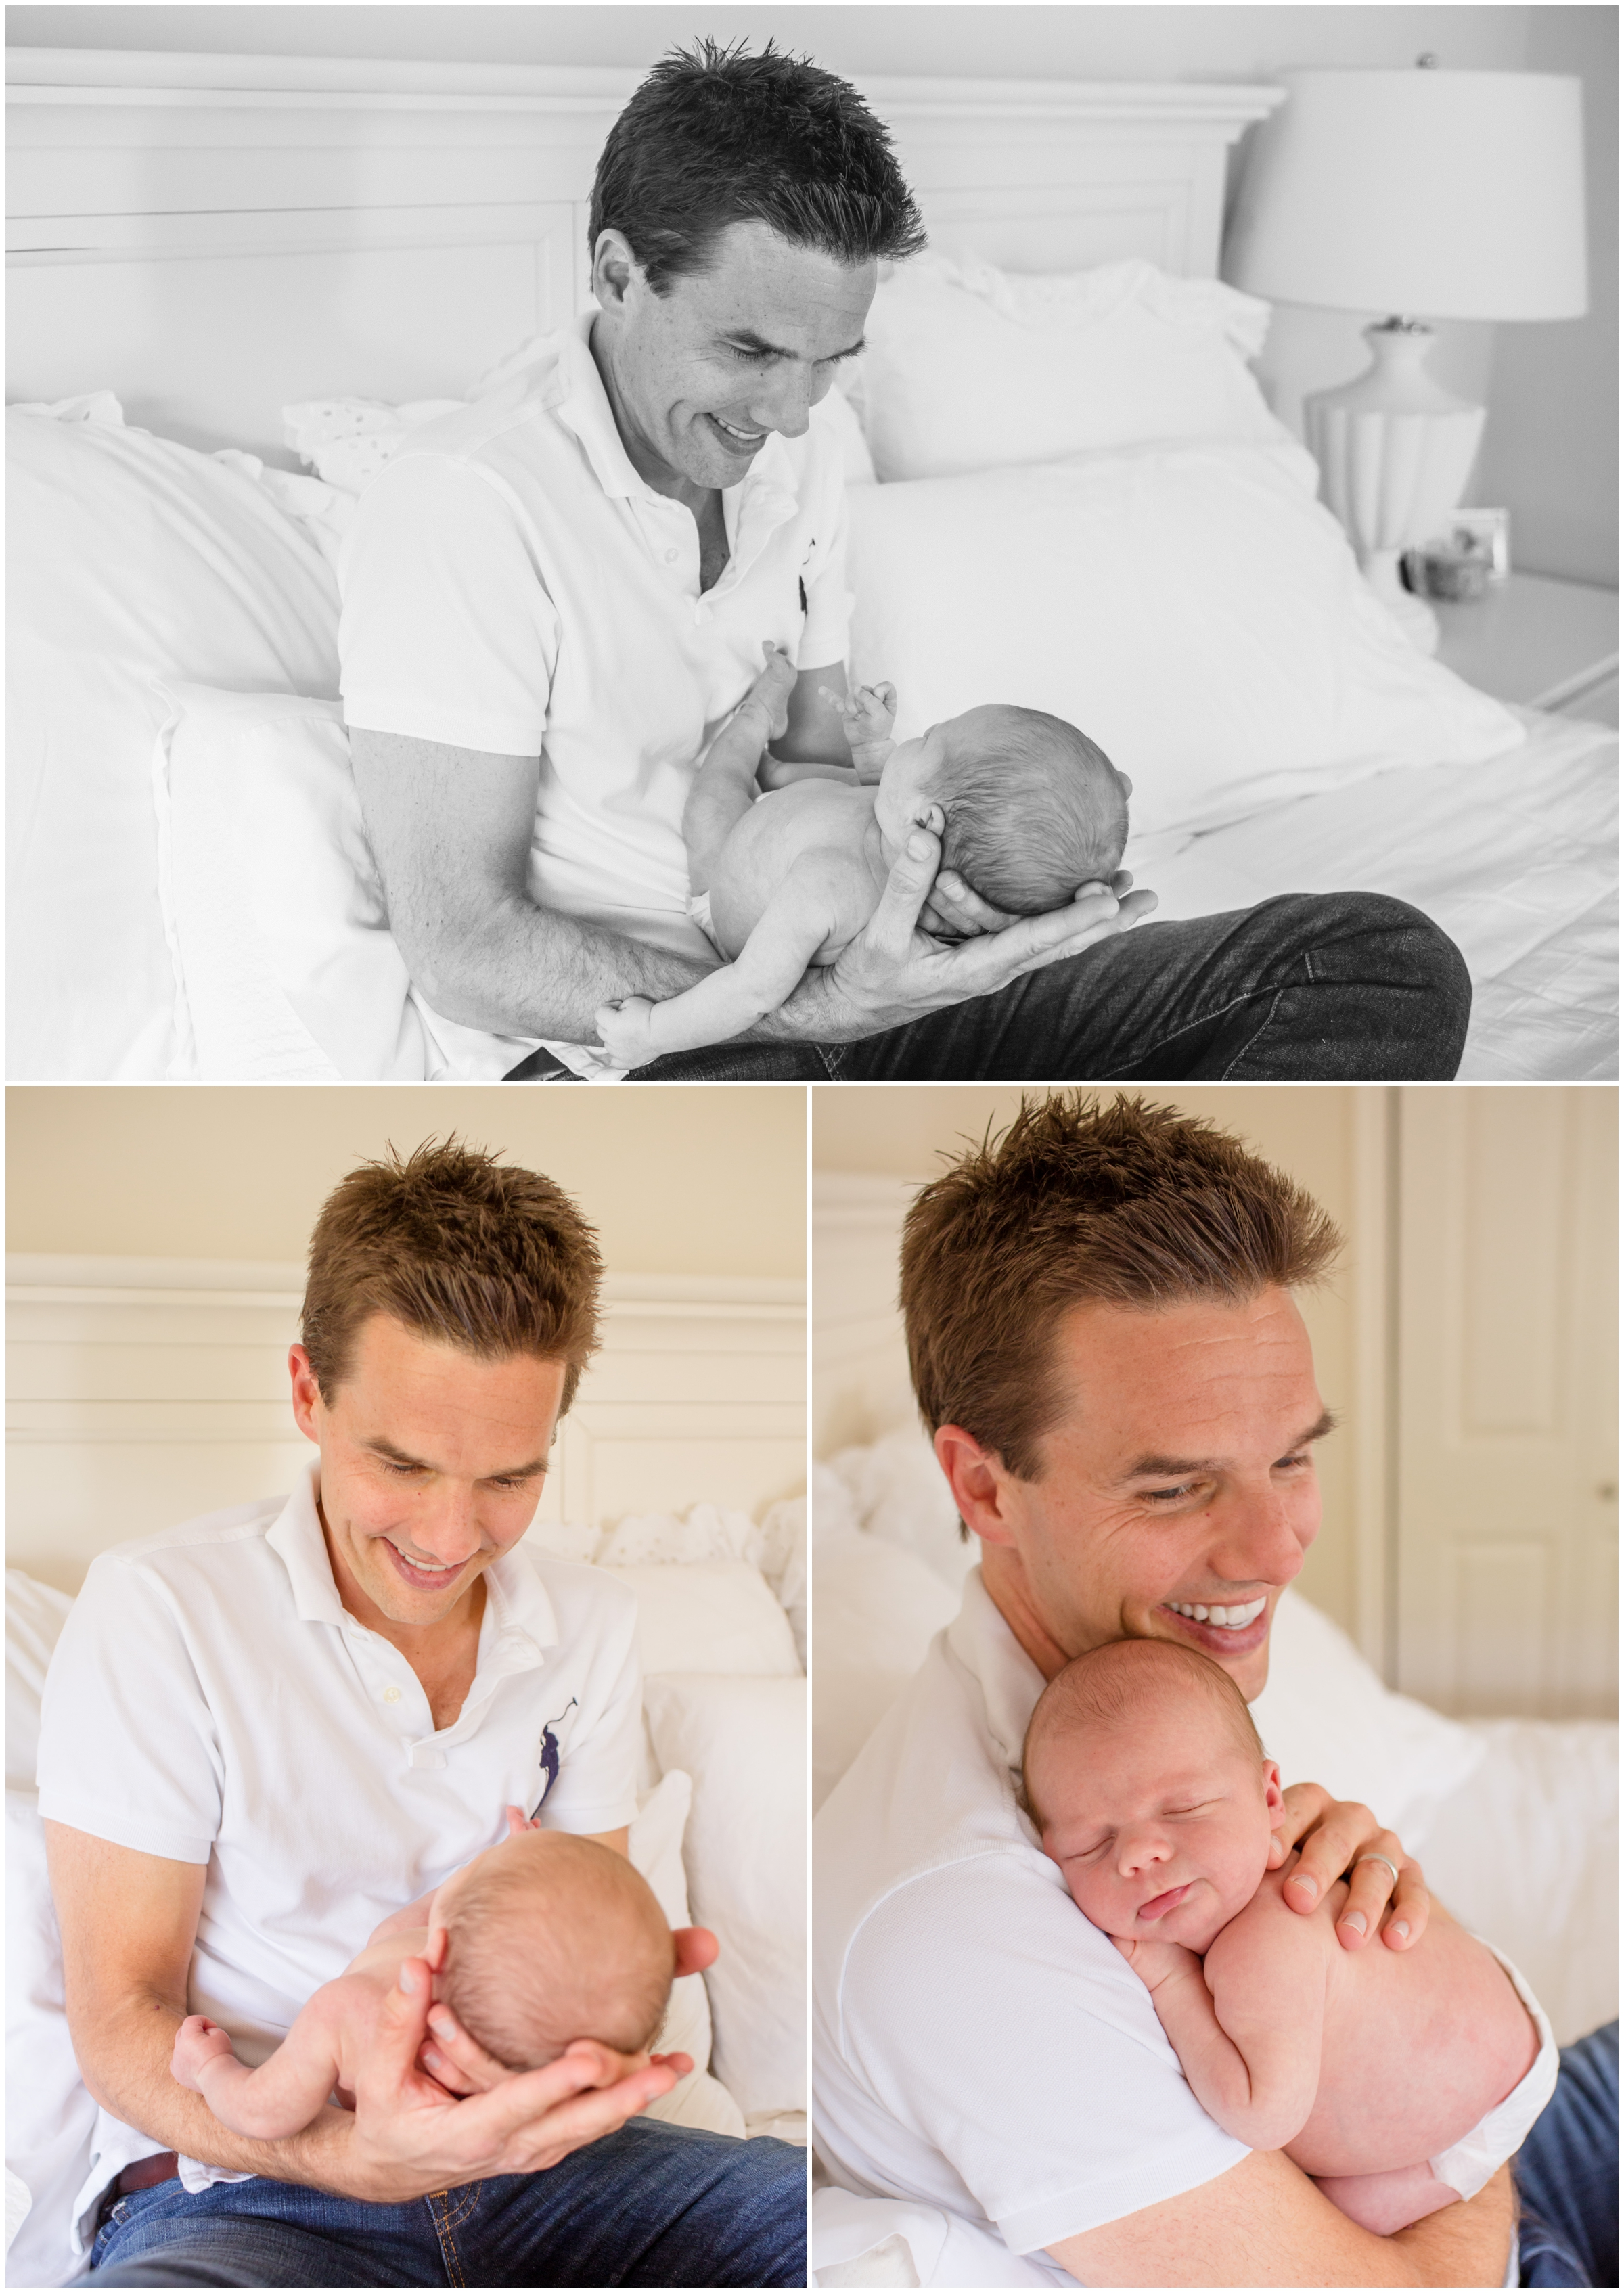 Lifestyle Newborn with Dad by Just Maggie Photography - Los Angeles Newborn Photographer